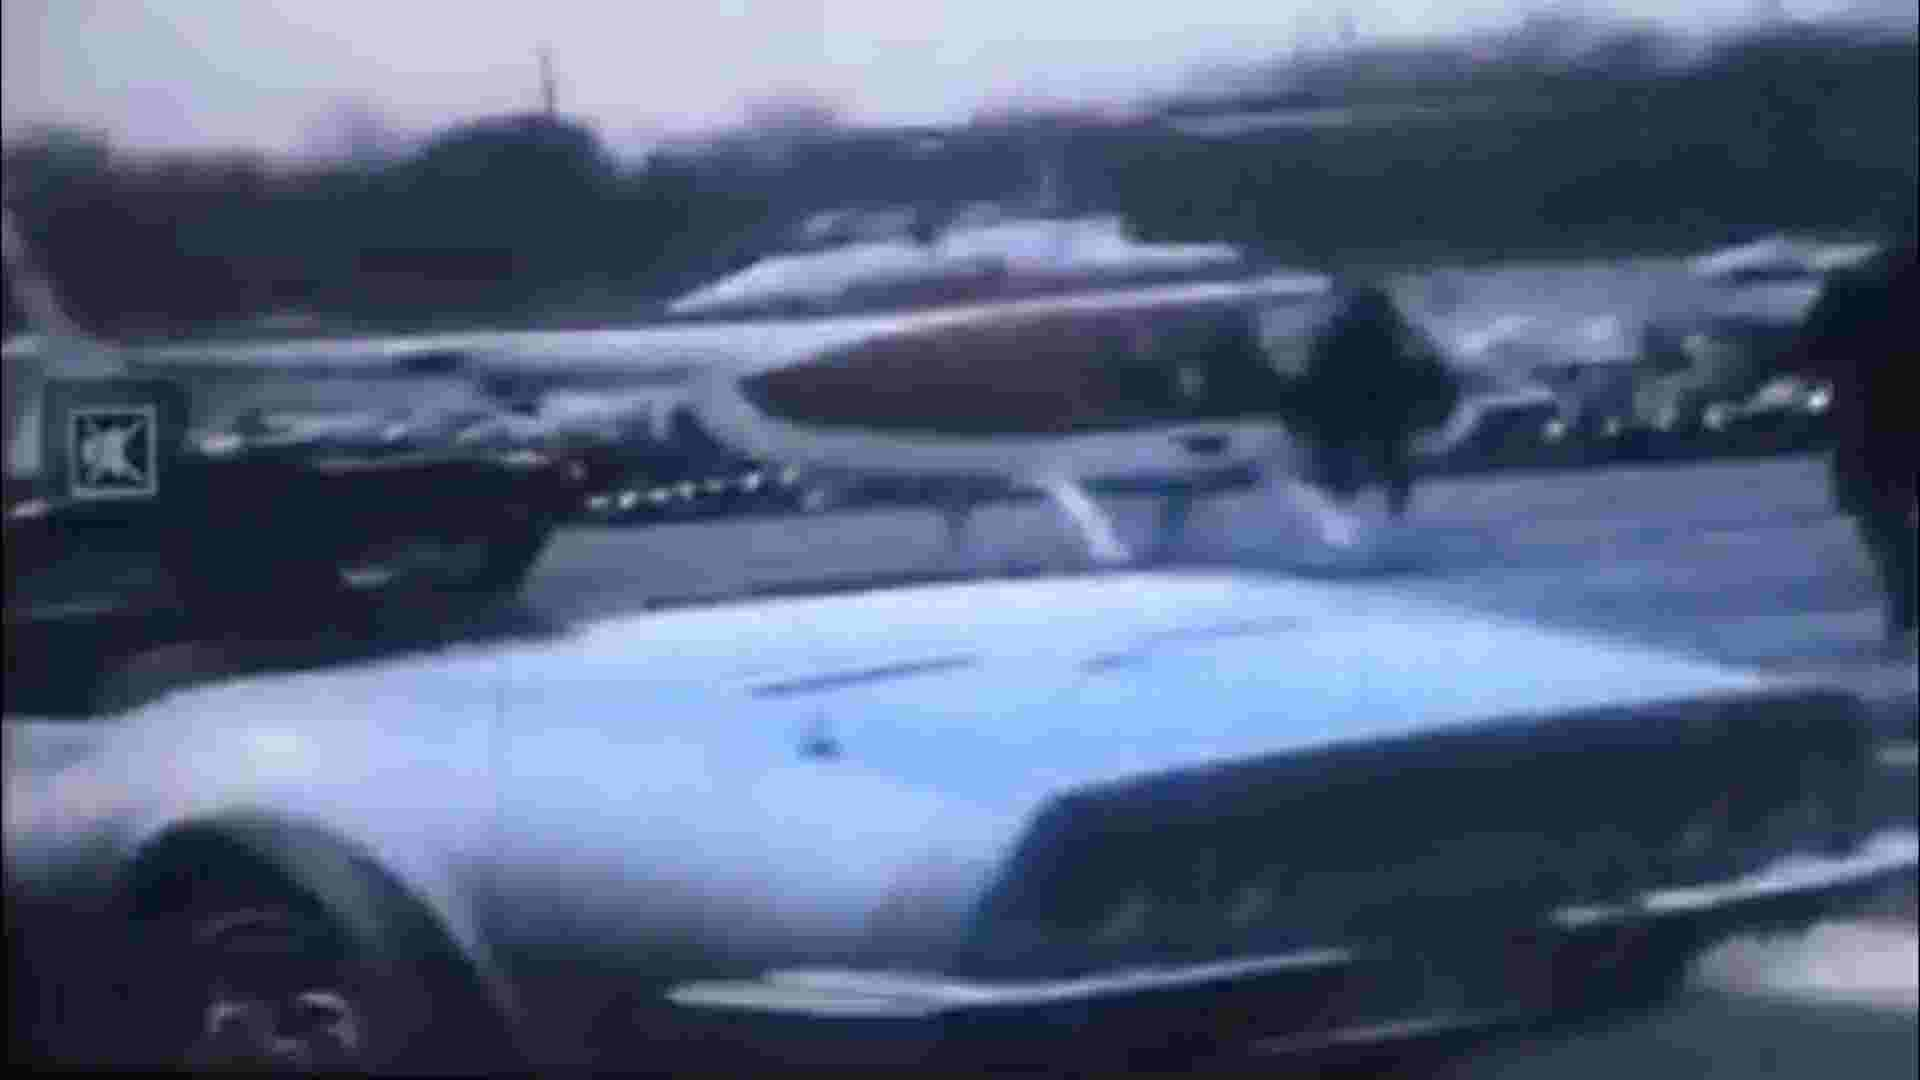 Santa Claus in a helicopter was once a regular event at GSP in Paramus